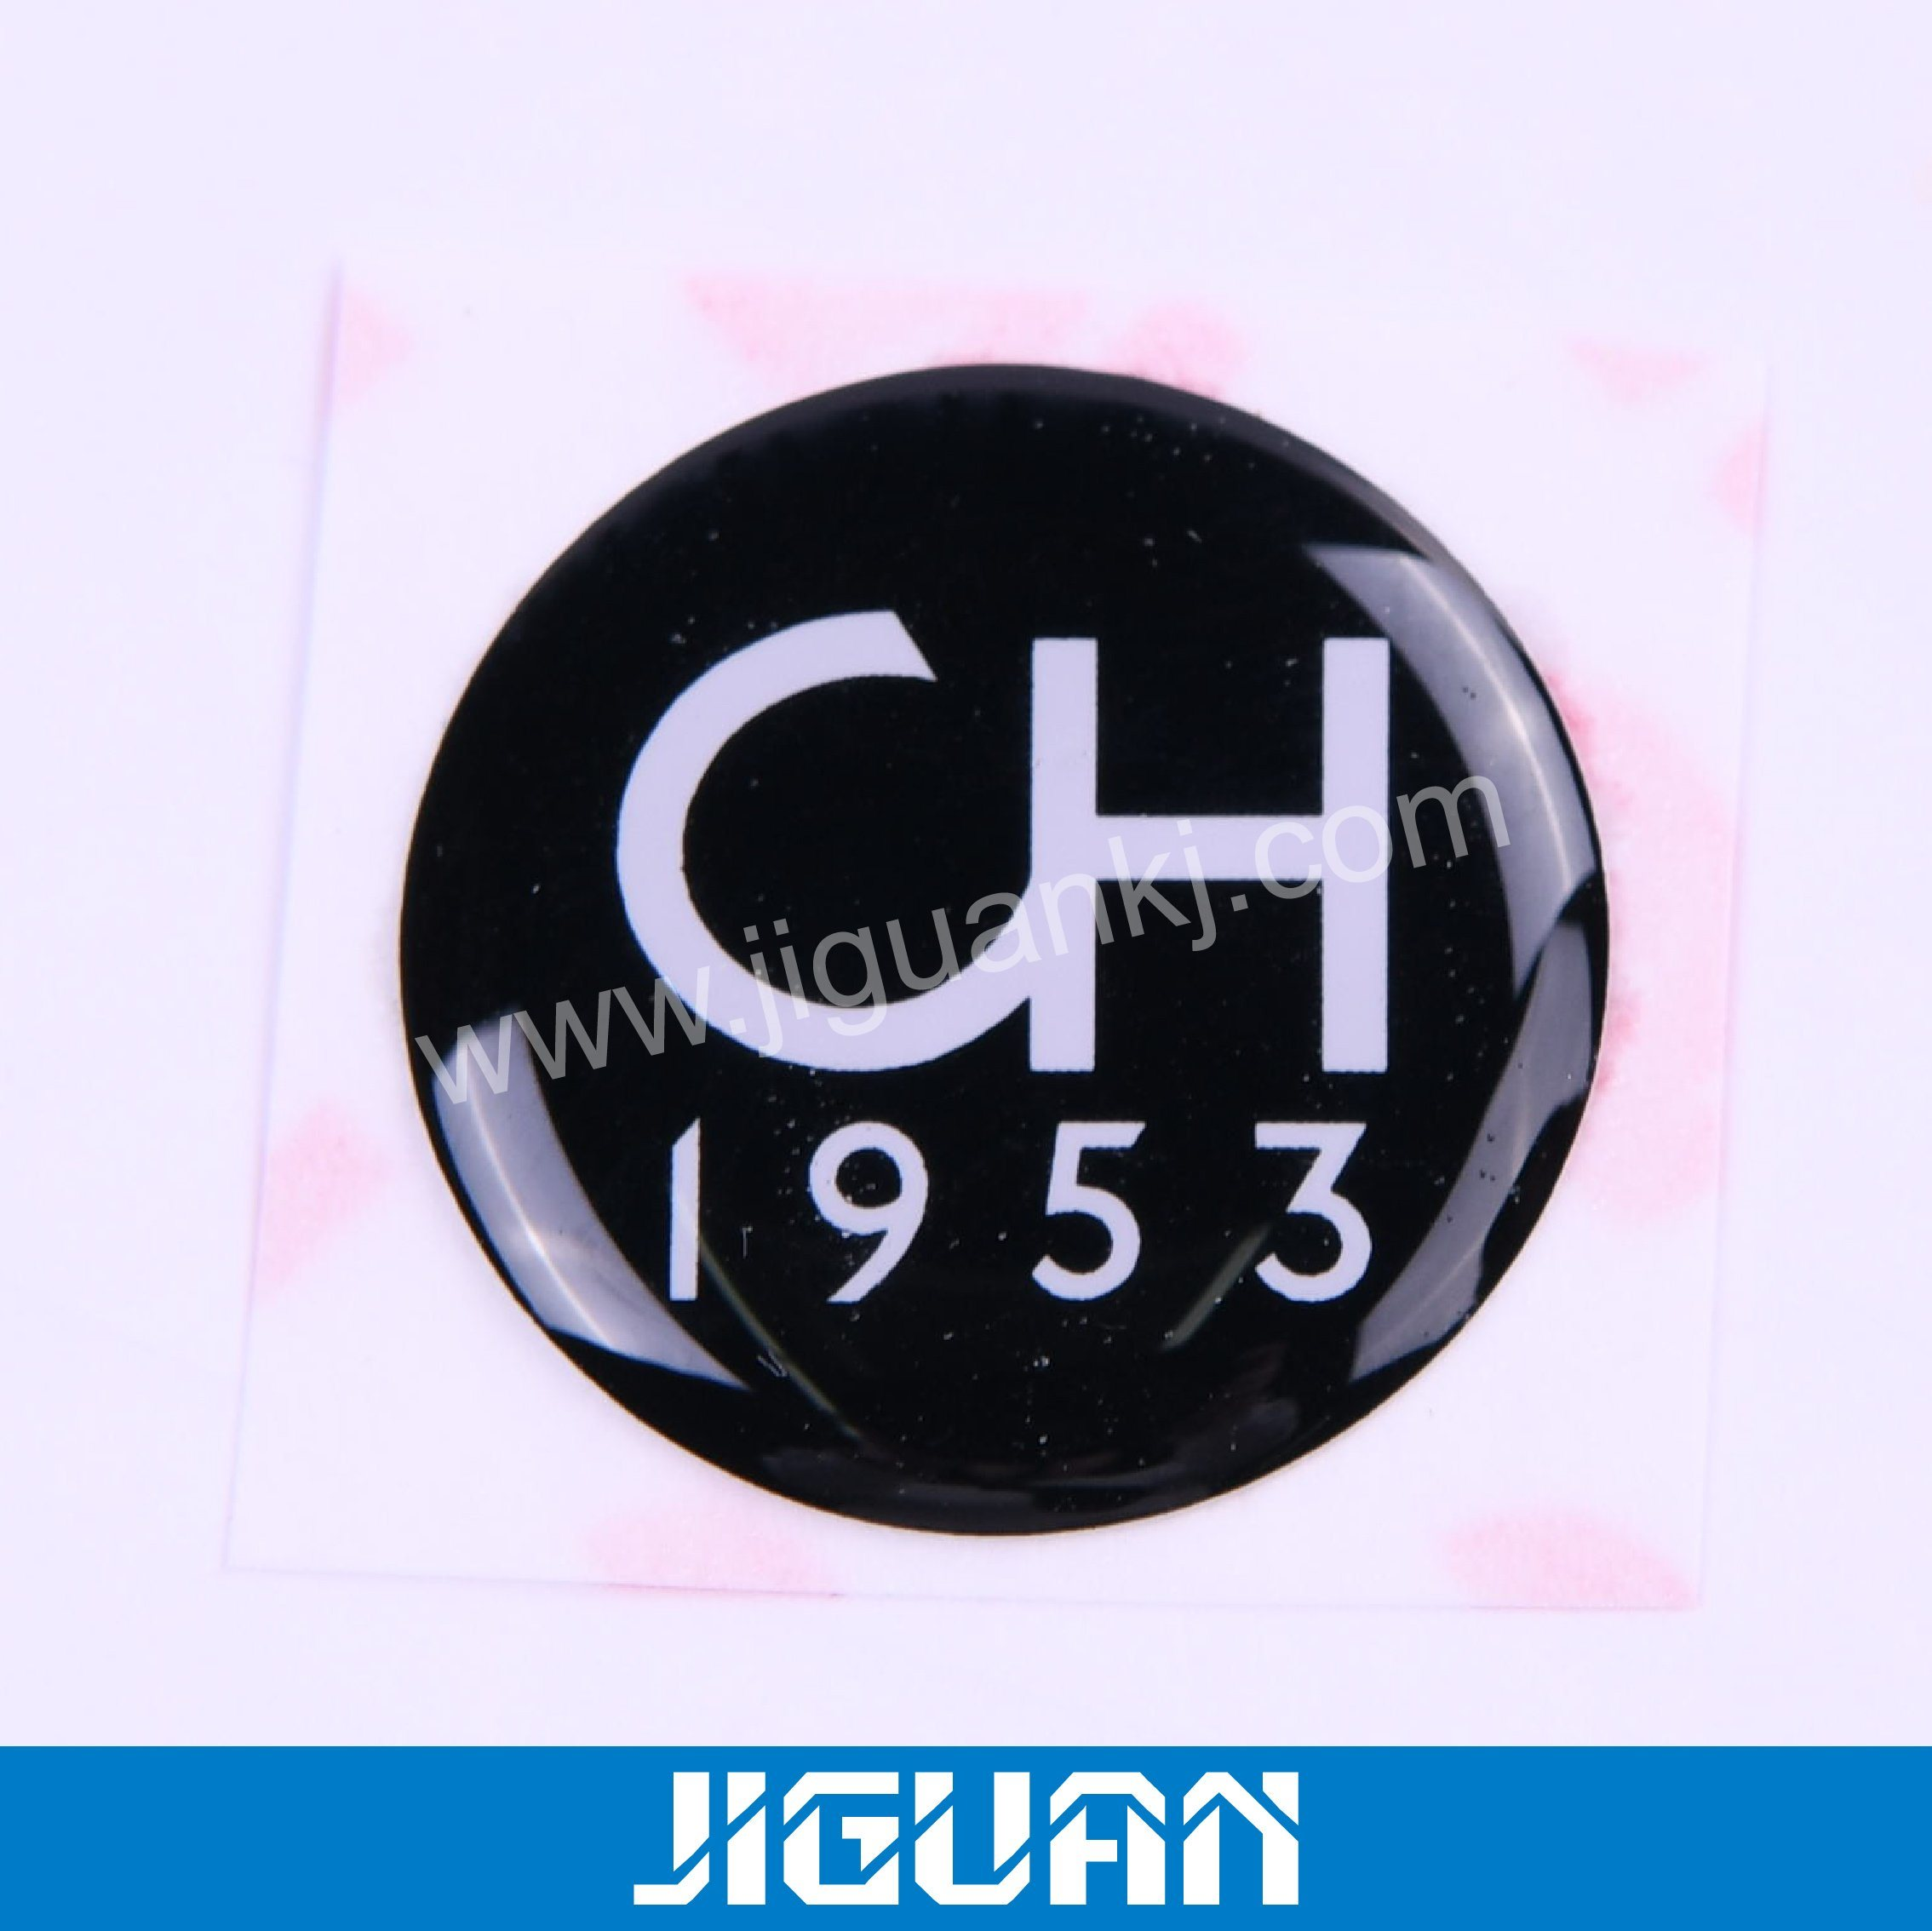 Hot item environmental custom clear epoxy resin dome sticker